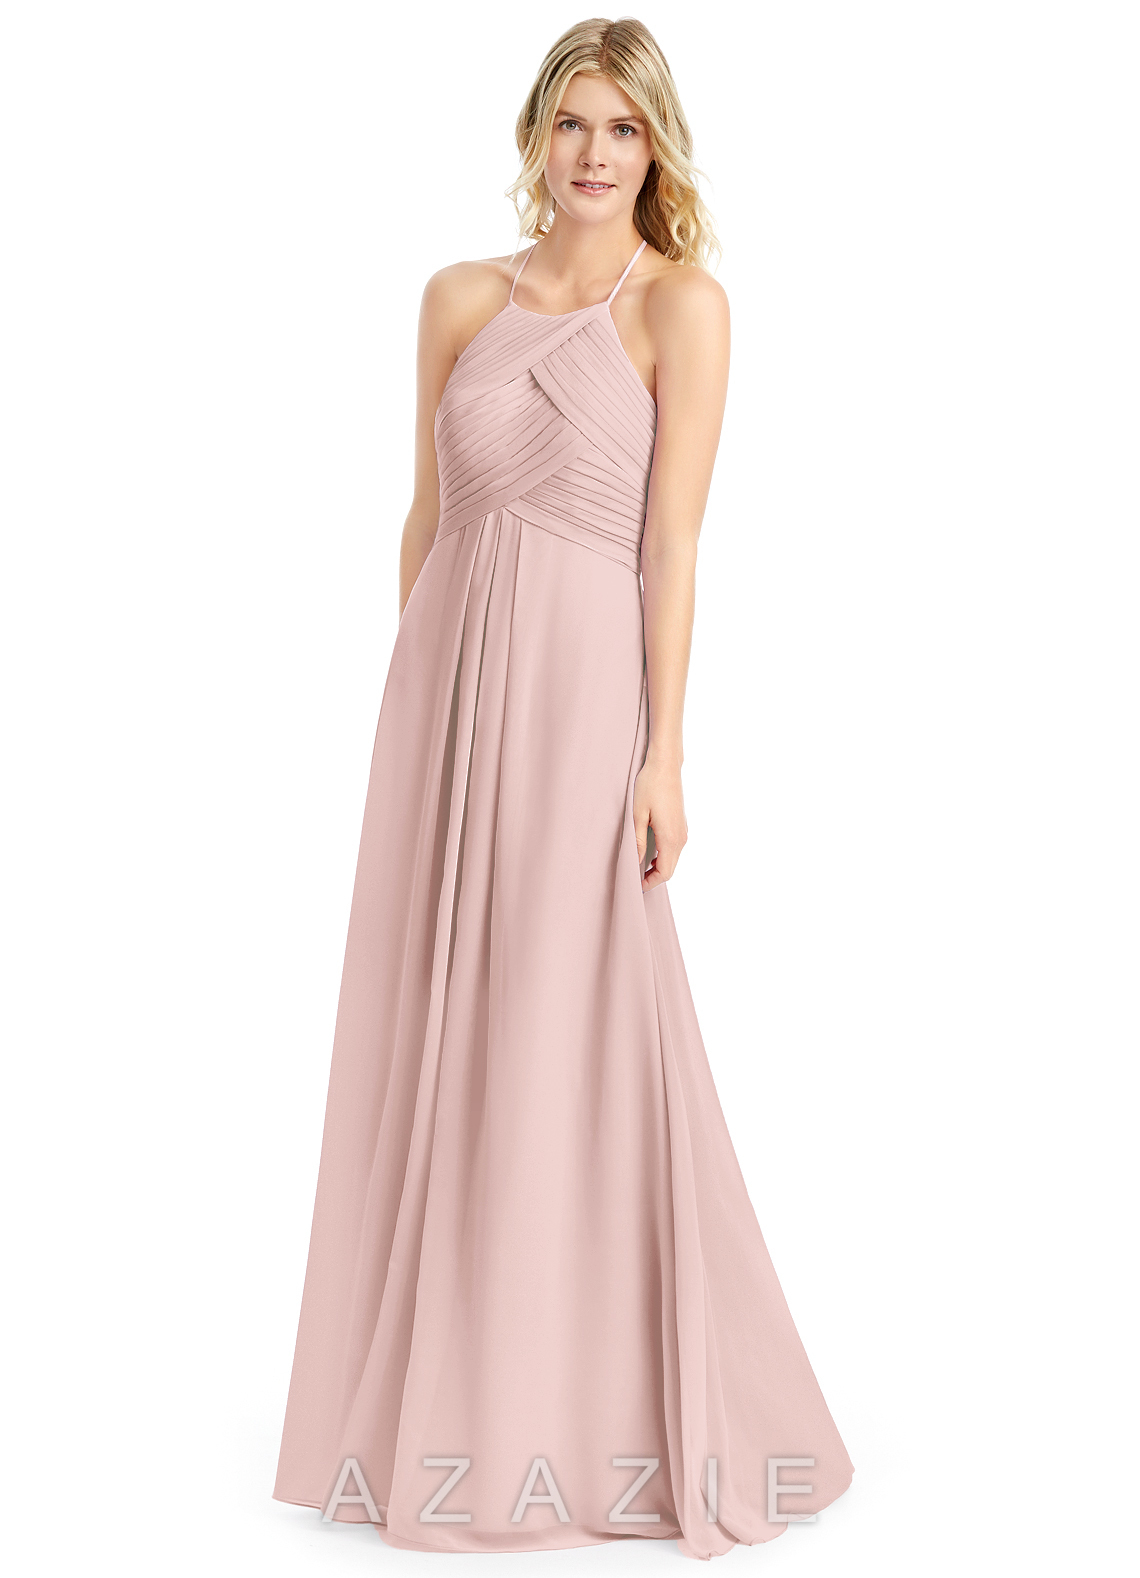 44425da1af91 Azazie Ginger Bridesmaid Dress - Dusty Rose | Azazie